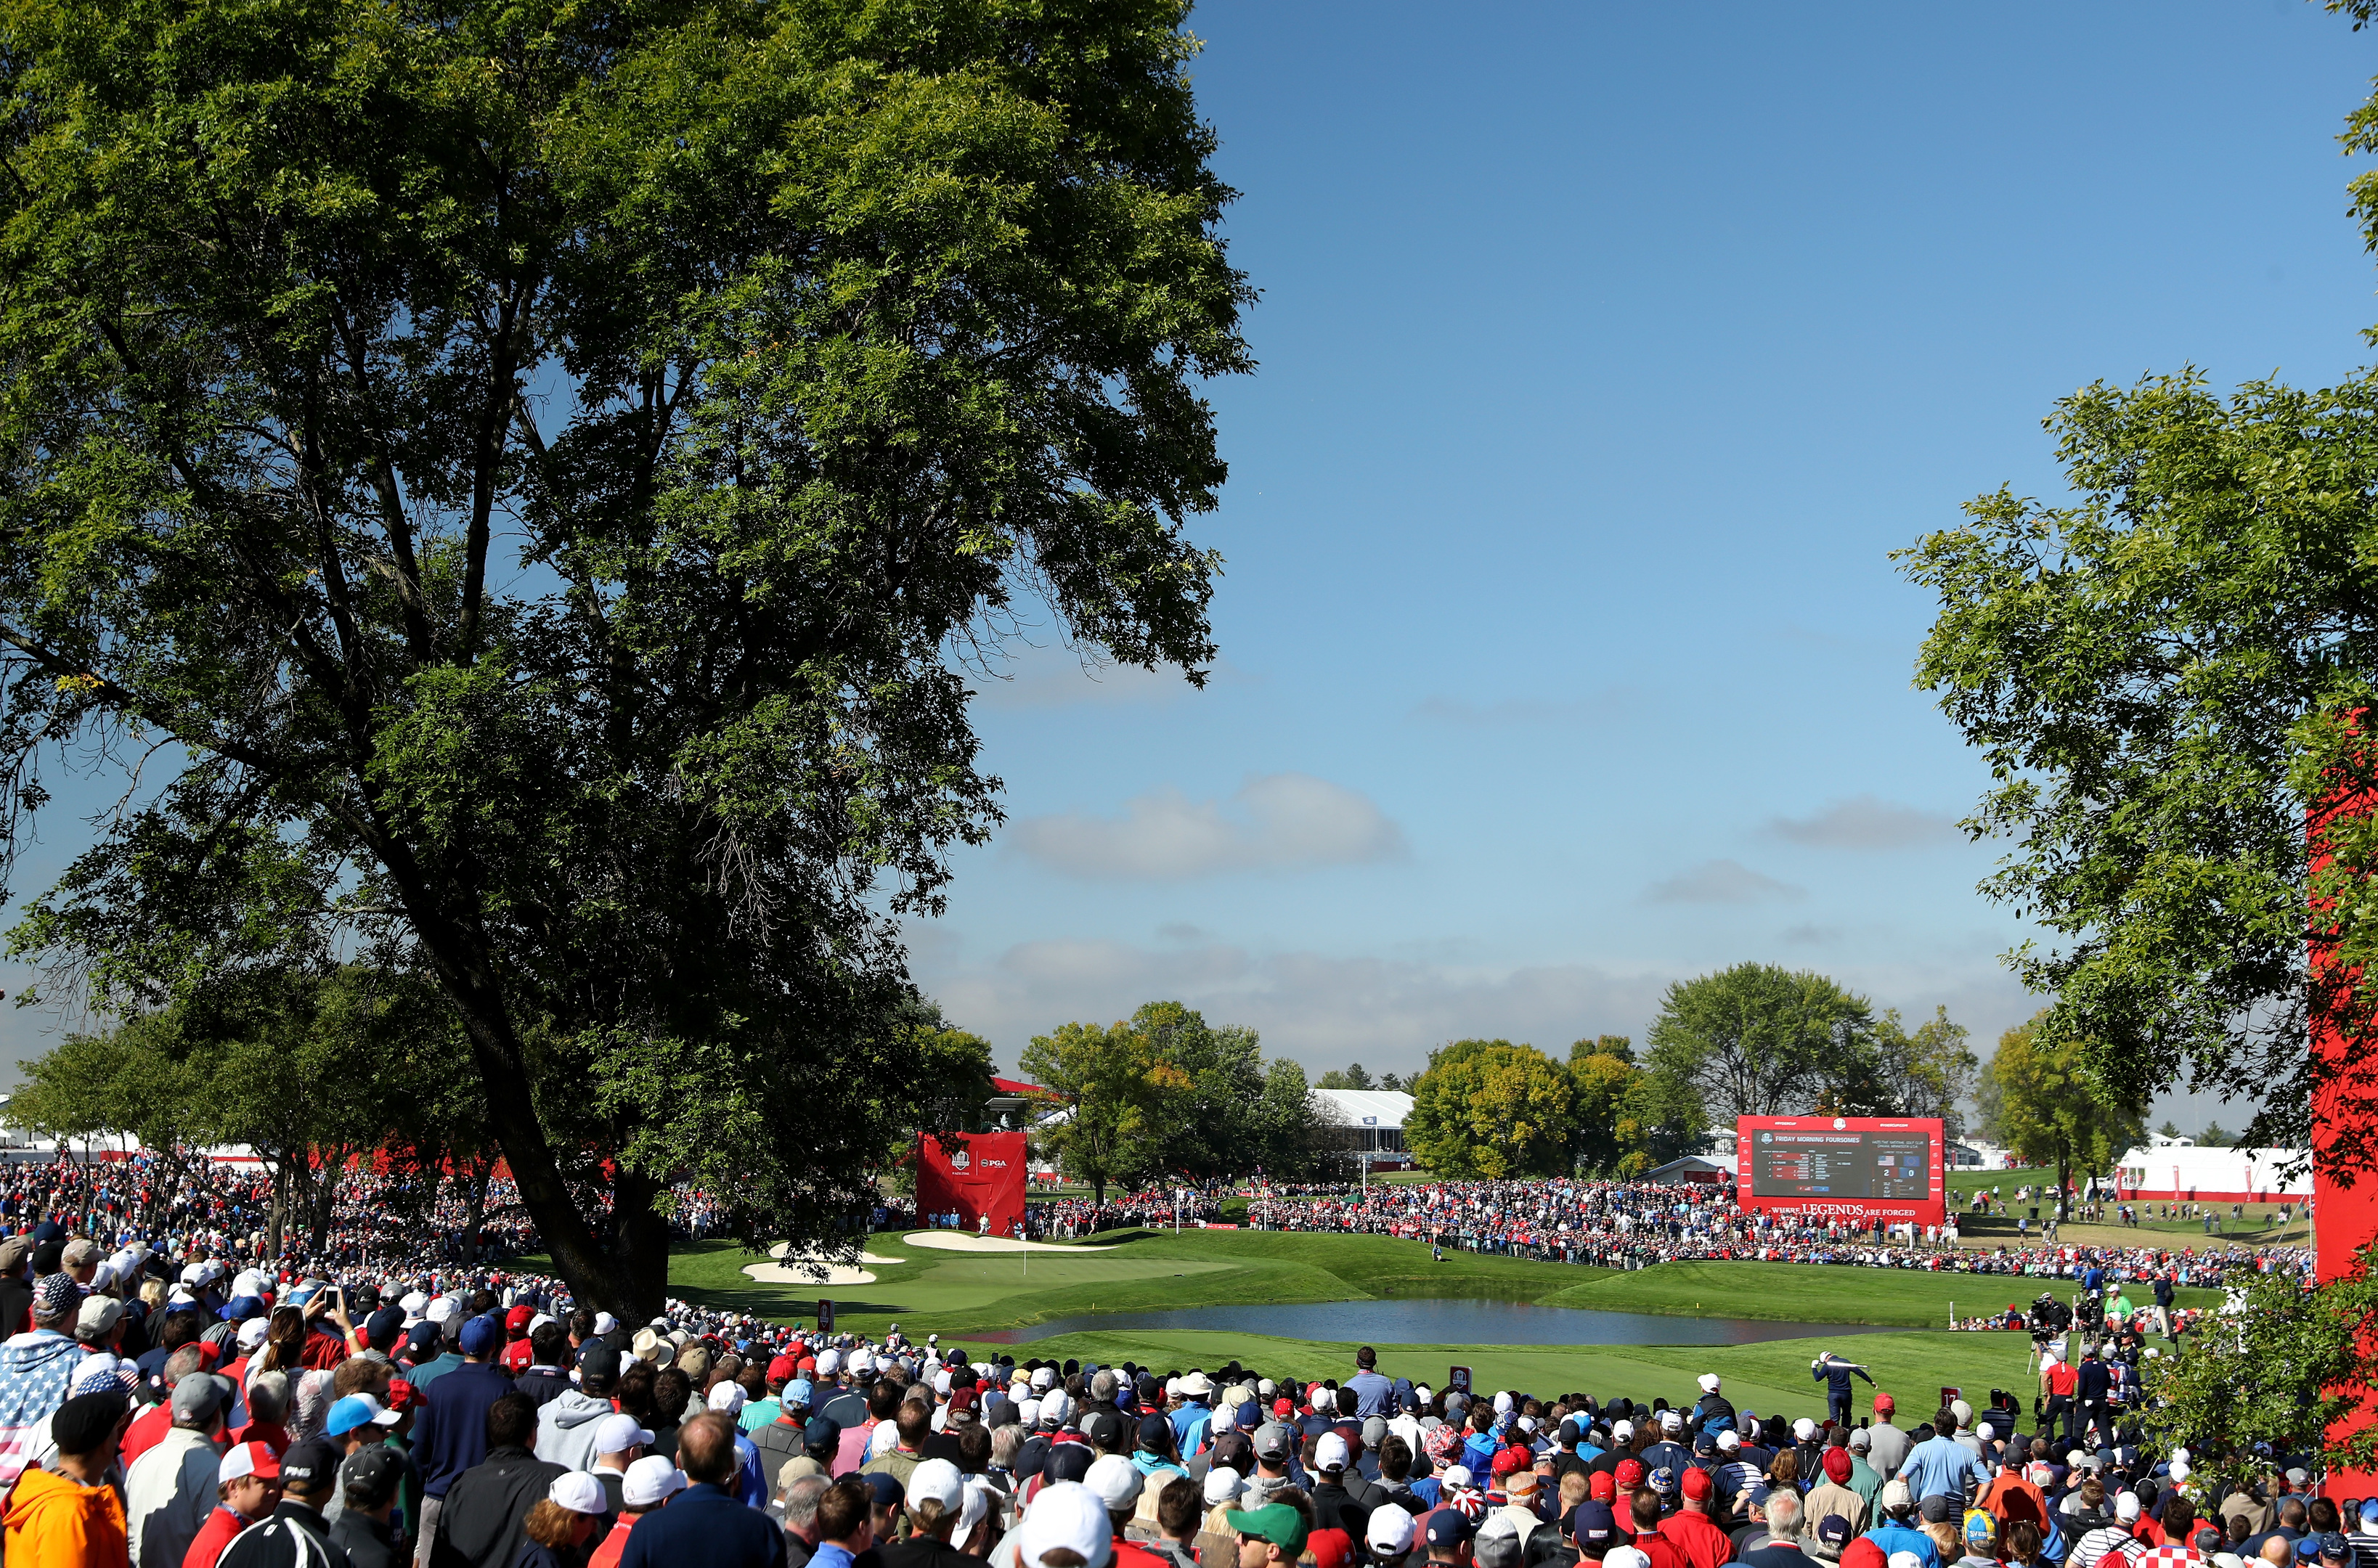 Huge crowds saw the USA dominate the opening morning of the 2016 Ryder Cup.